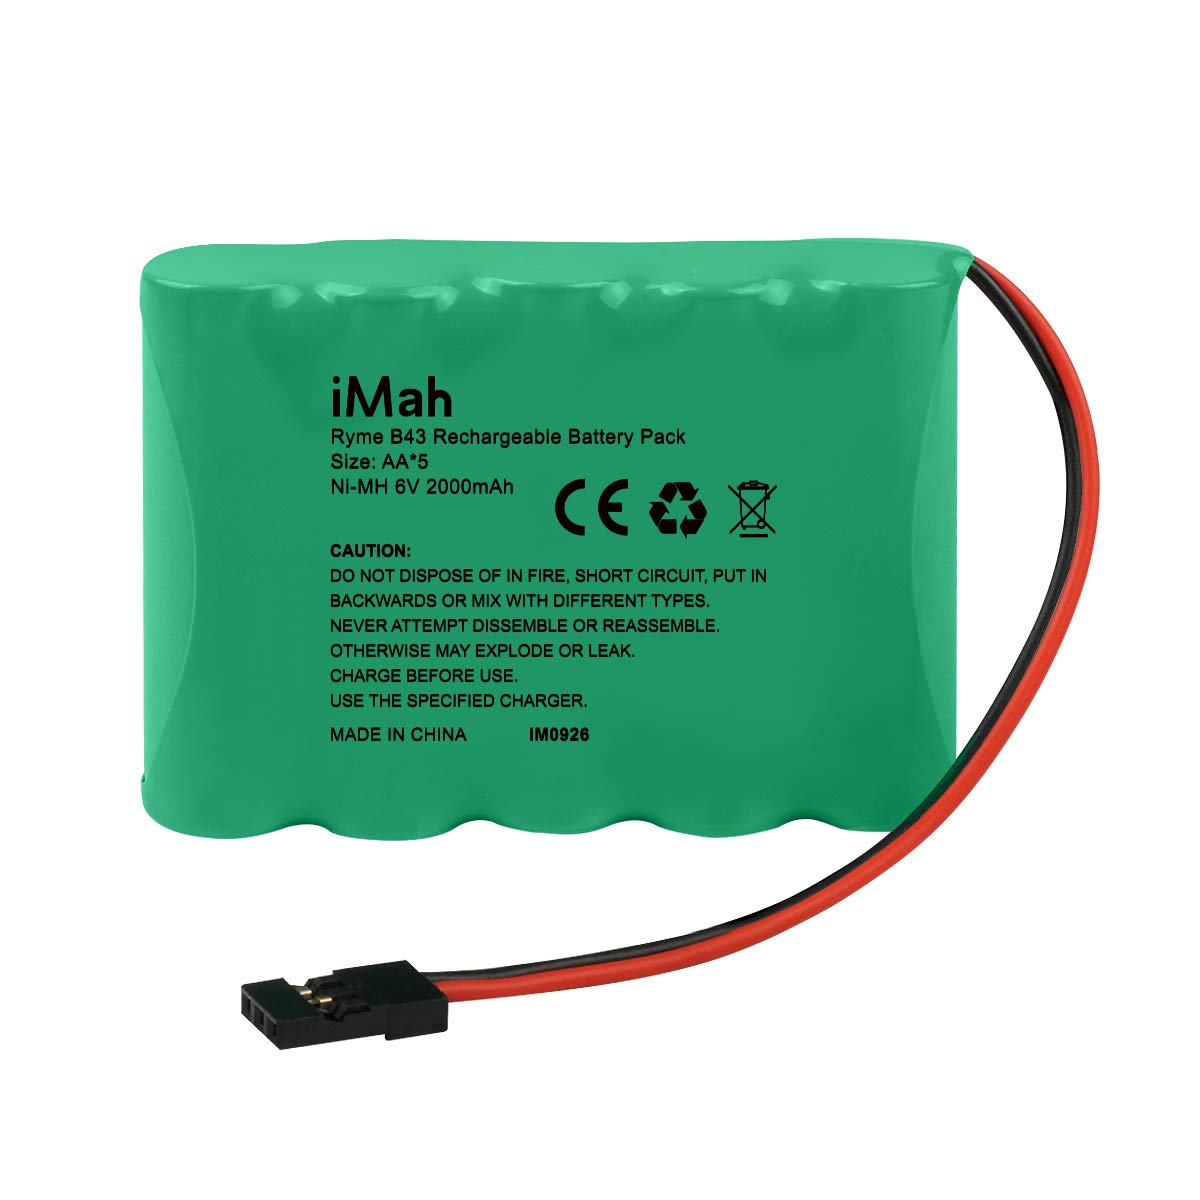 iMah 6V AA Battery Pack 2000mAh High Capacity Ni-MH Rechargeable with Hitec Plug Receiver RX Battery for RC Airplanes/RC Aircrafts and More